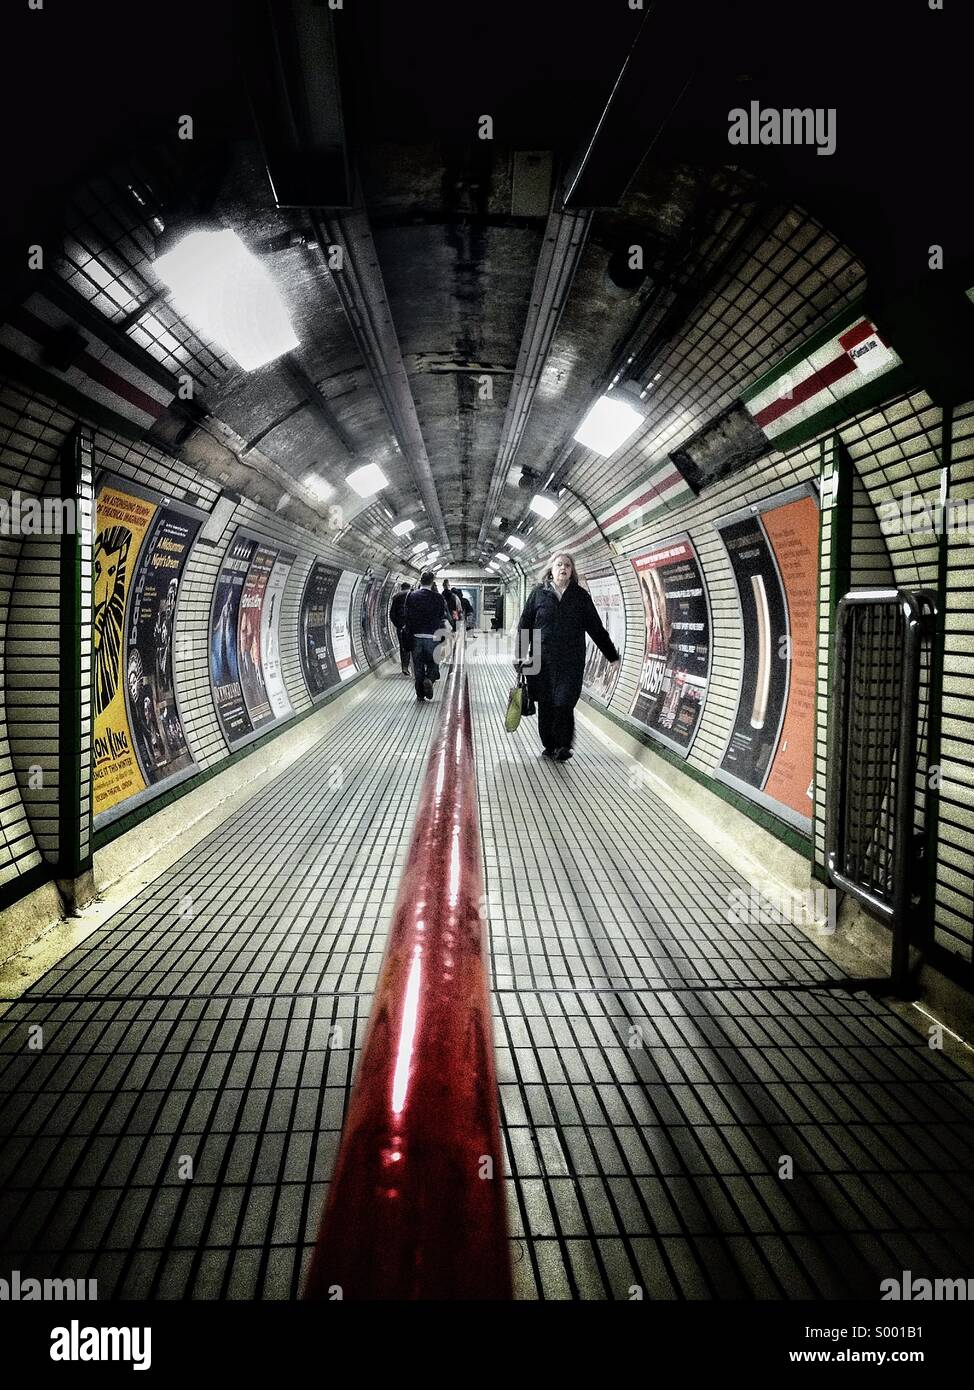 Commuters at London Underground - Stock Image